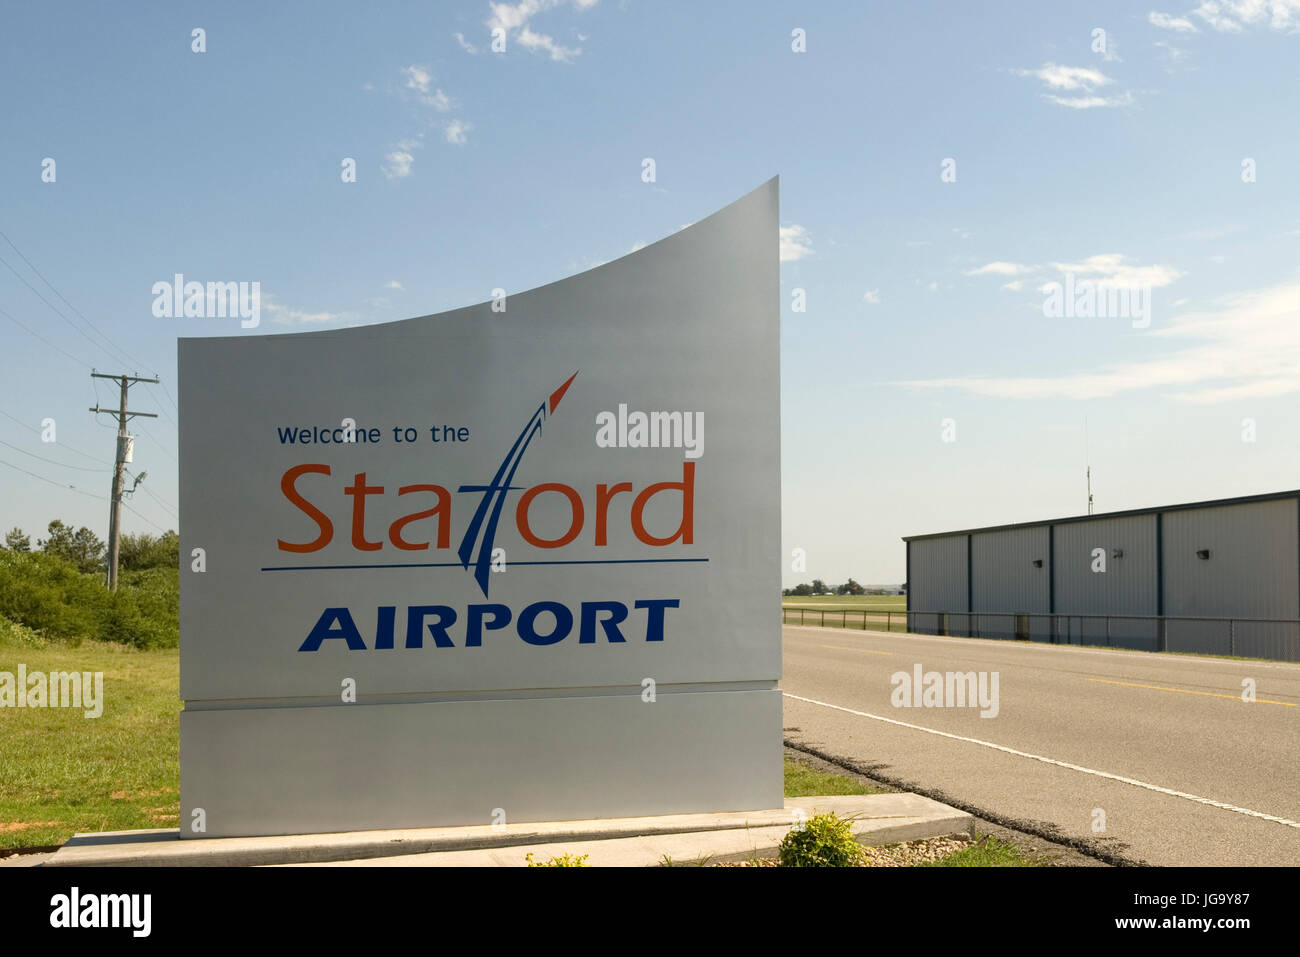 Stafford Airport welcome sign Weatherford Oklahoma, USA. - Stock Image